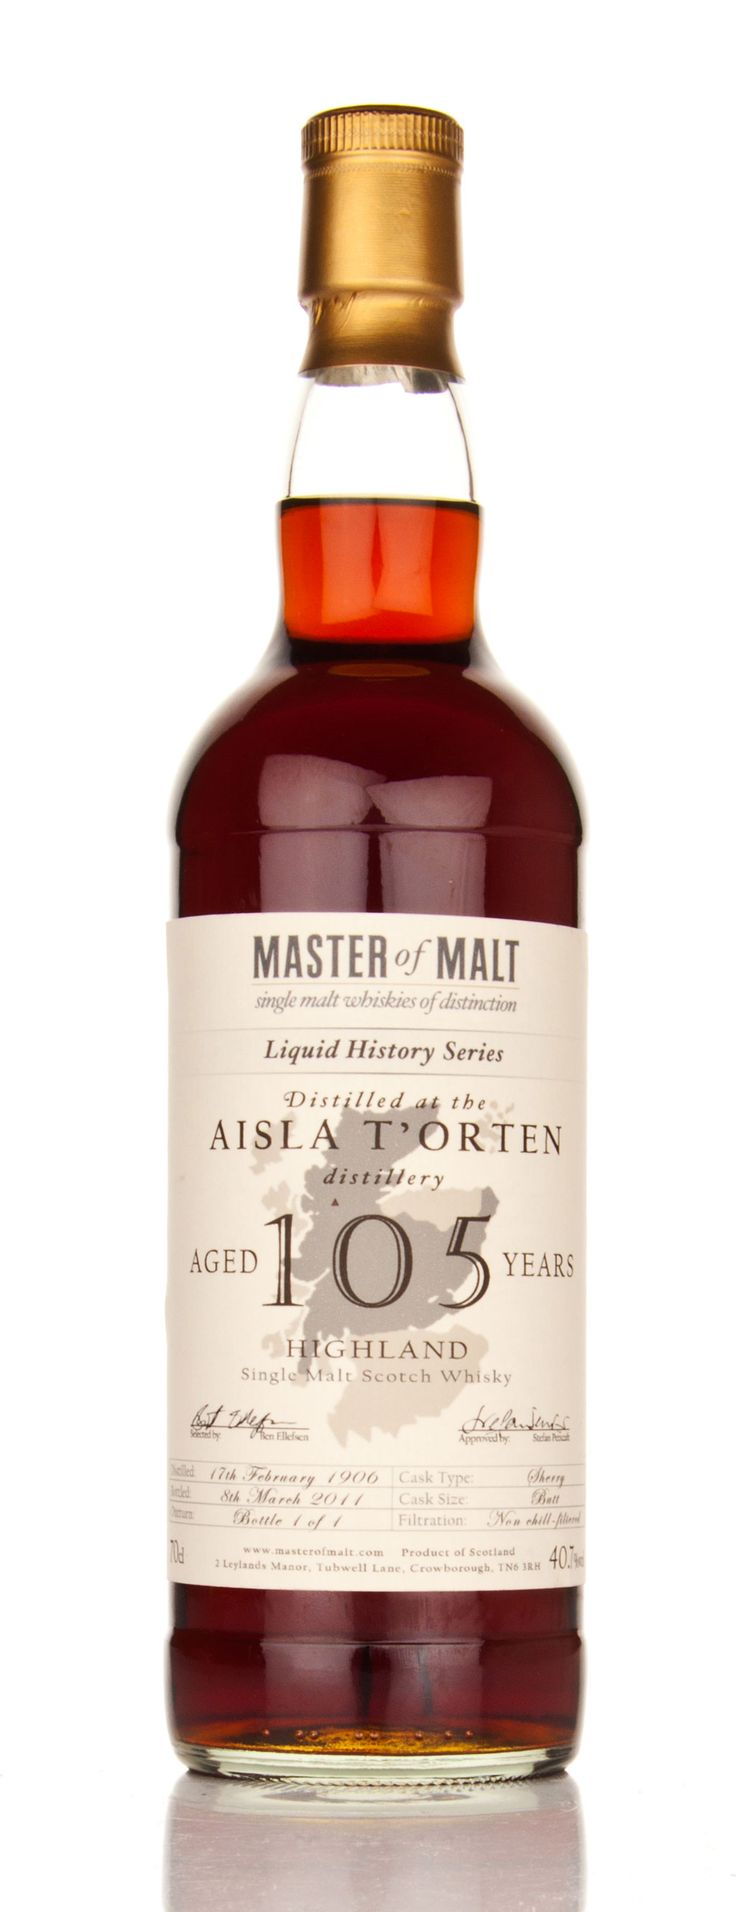 Aisla T'Orten 105-Year-Old is one of the world's oldest and most expensive whiskies at $1.4 million